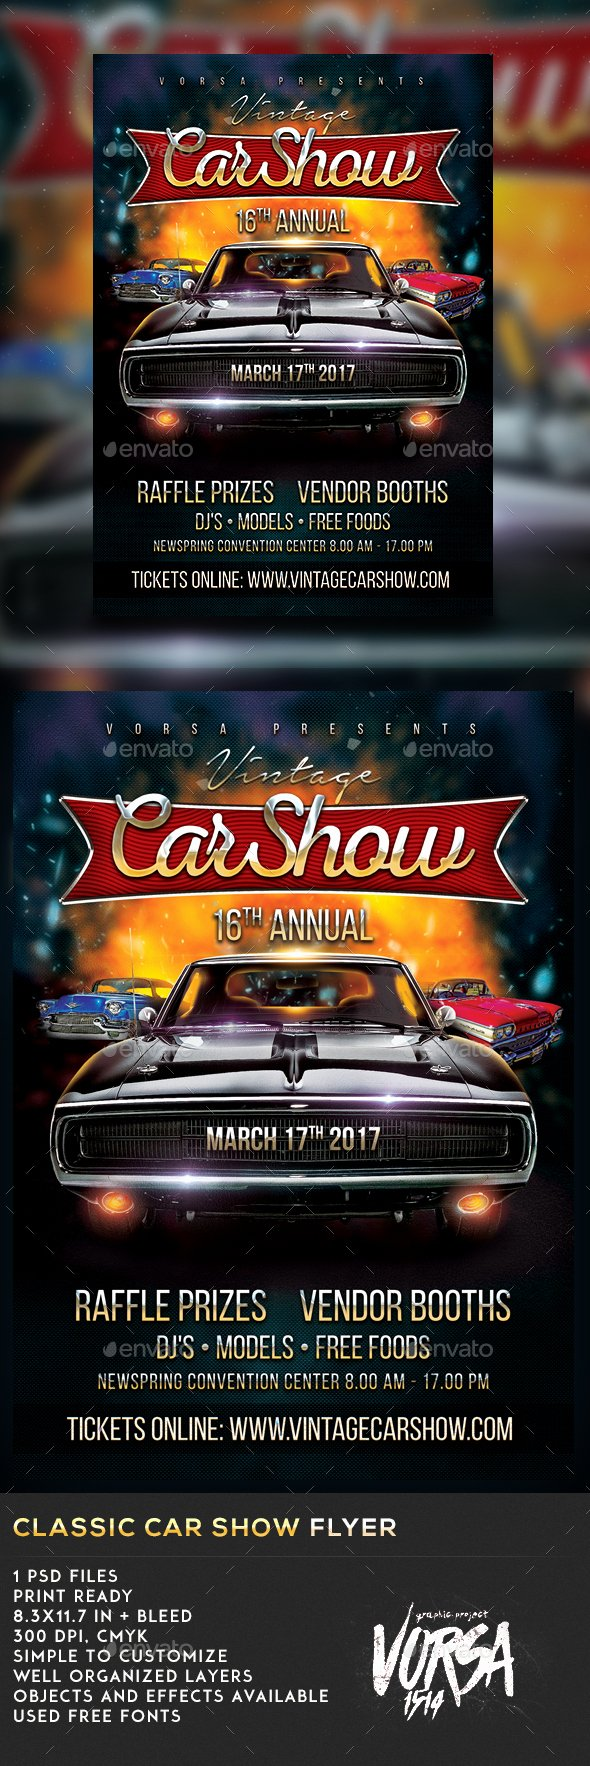 Free Car Show Flyer Template Lovely Classic Car Show Flyer by Vorsa